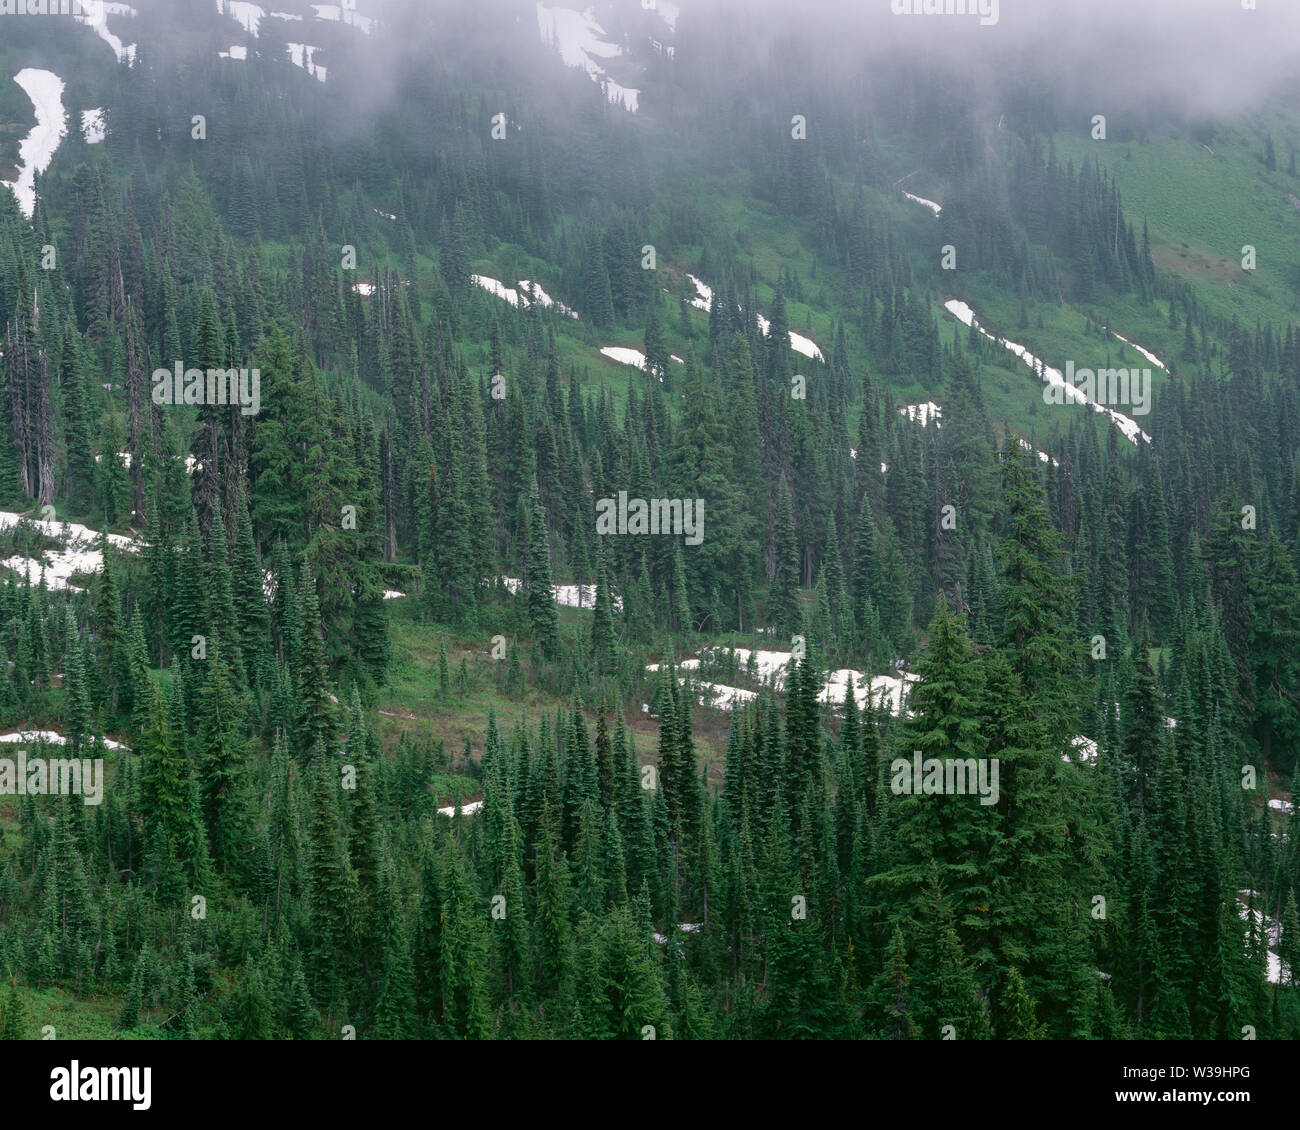 USA, Washington, Mt. Rainier National Park, Fog drifts among evergreens on south flanks of Mt. Rainier with lush meadows and lingering snow. Stock Photo